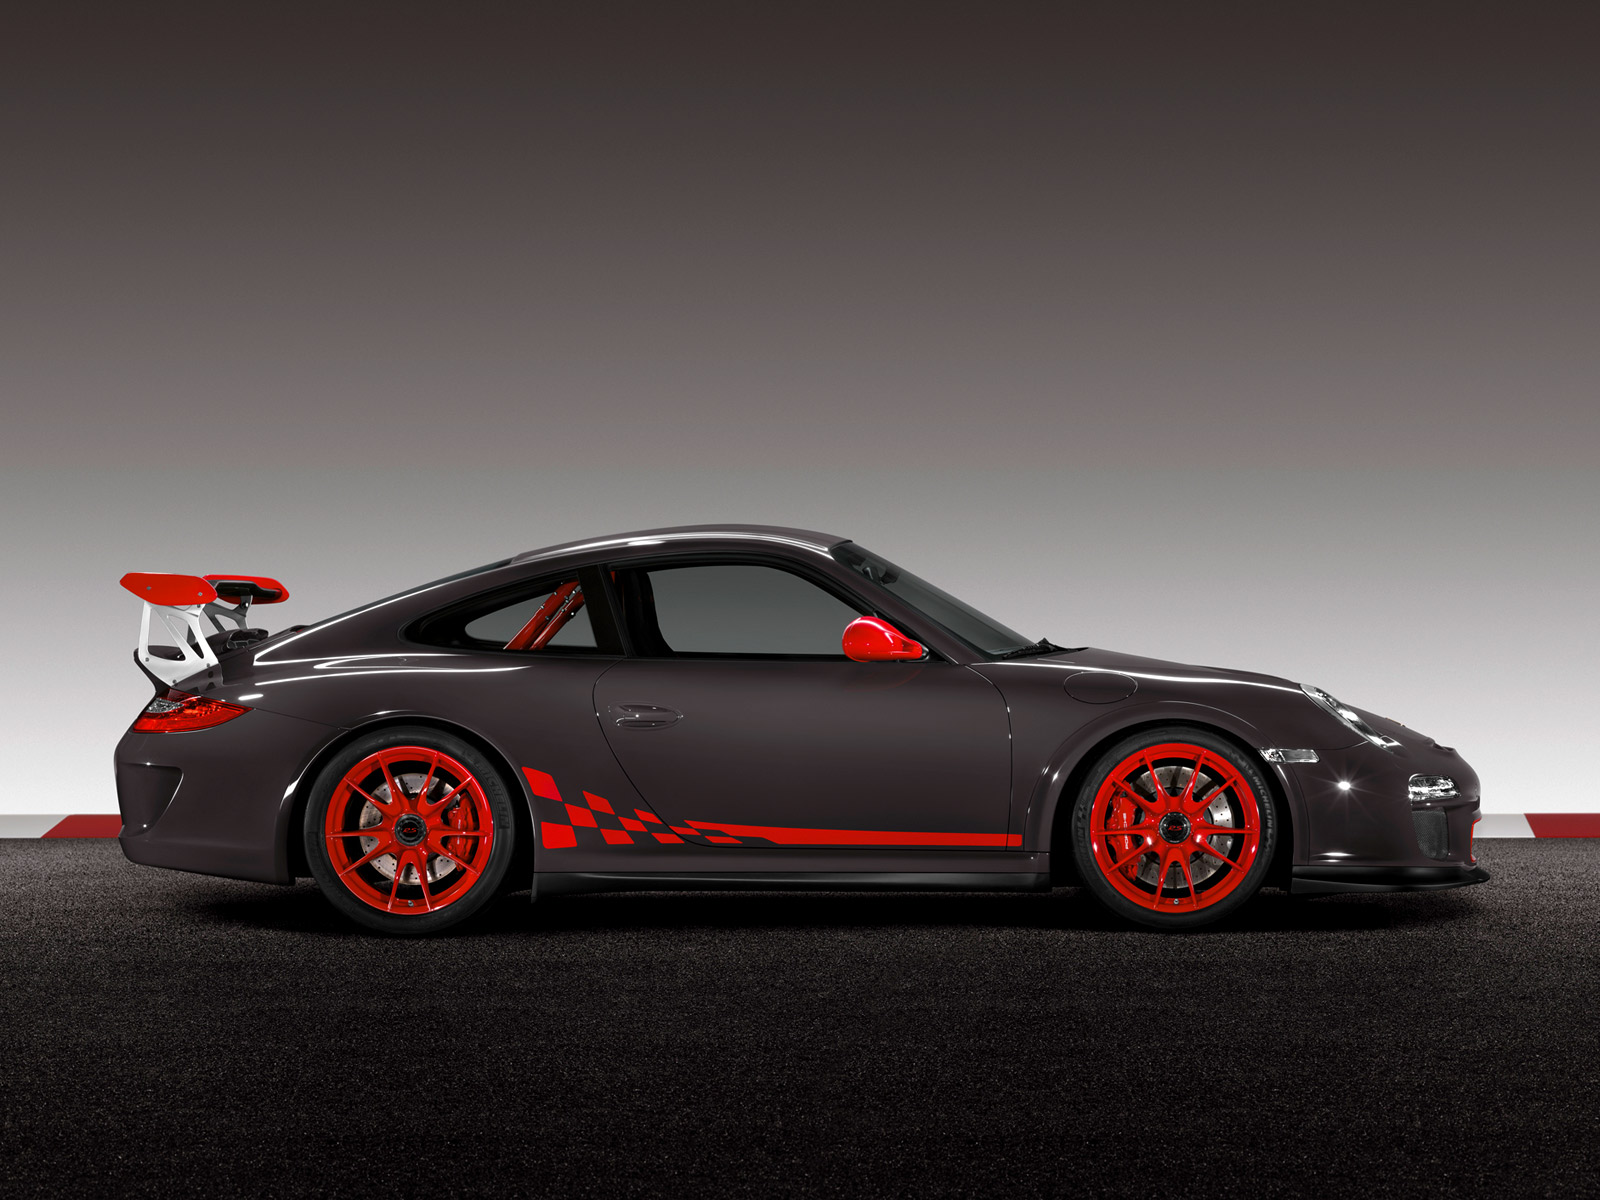 911 GT3 RS Porsche Wallpaper HD Wallpapers 1600x1200